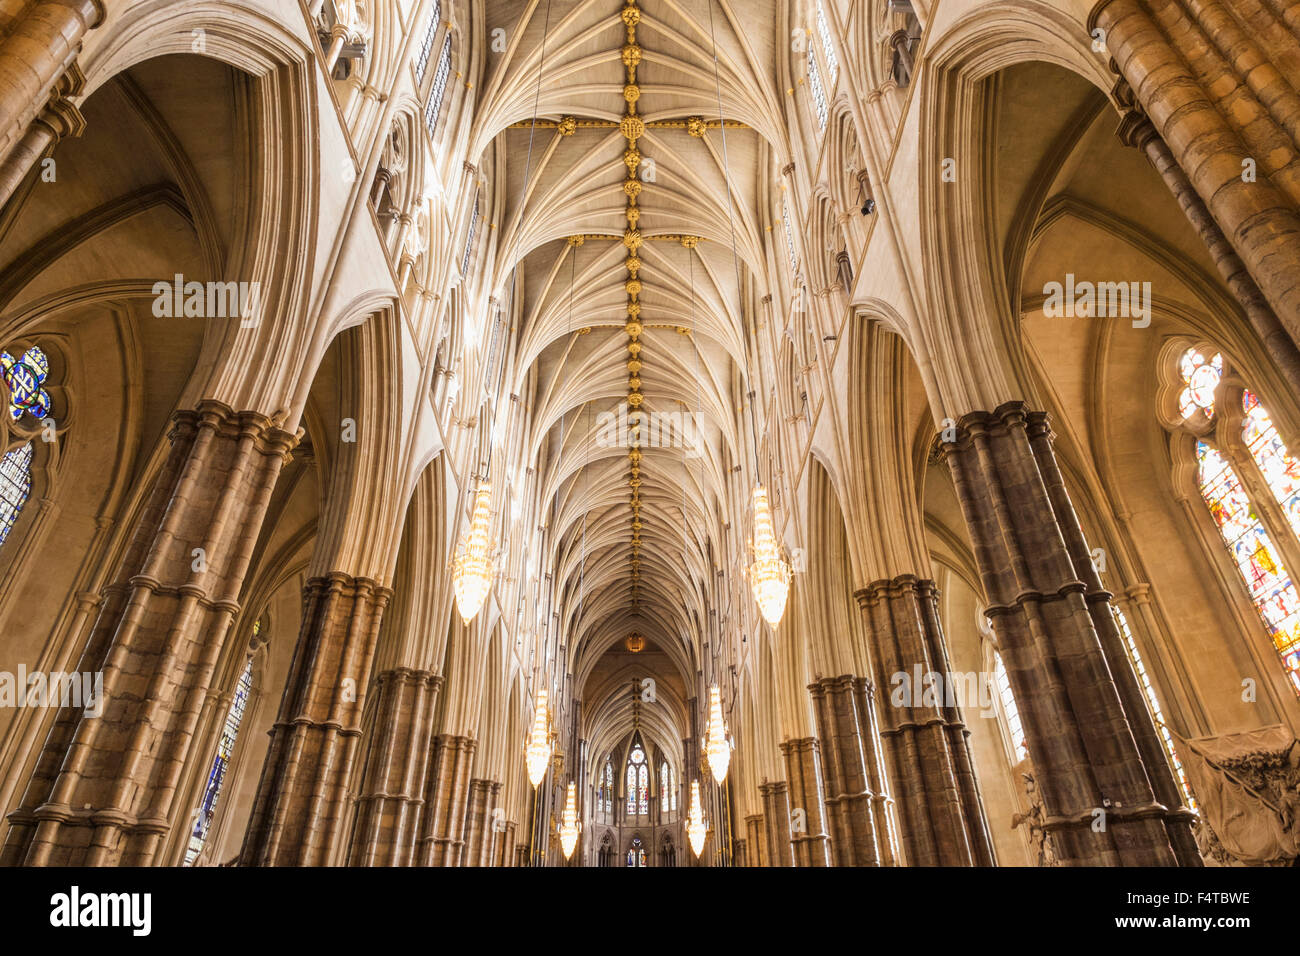 England, London, Westminster Abbey, The Nave - Stock Image